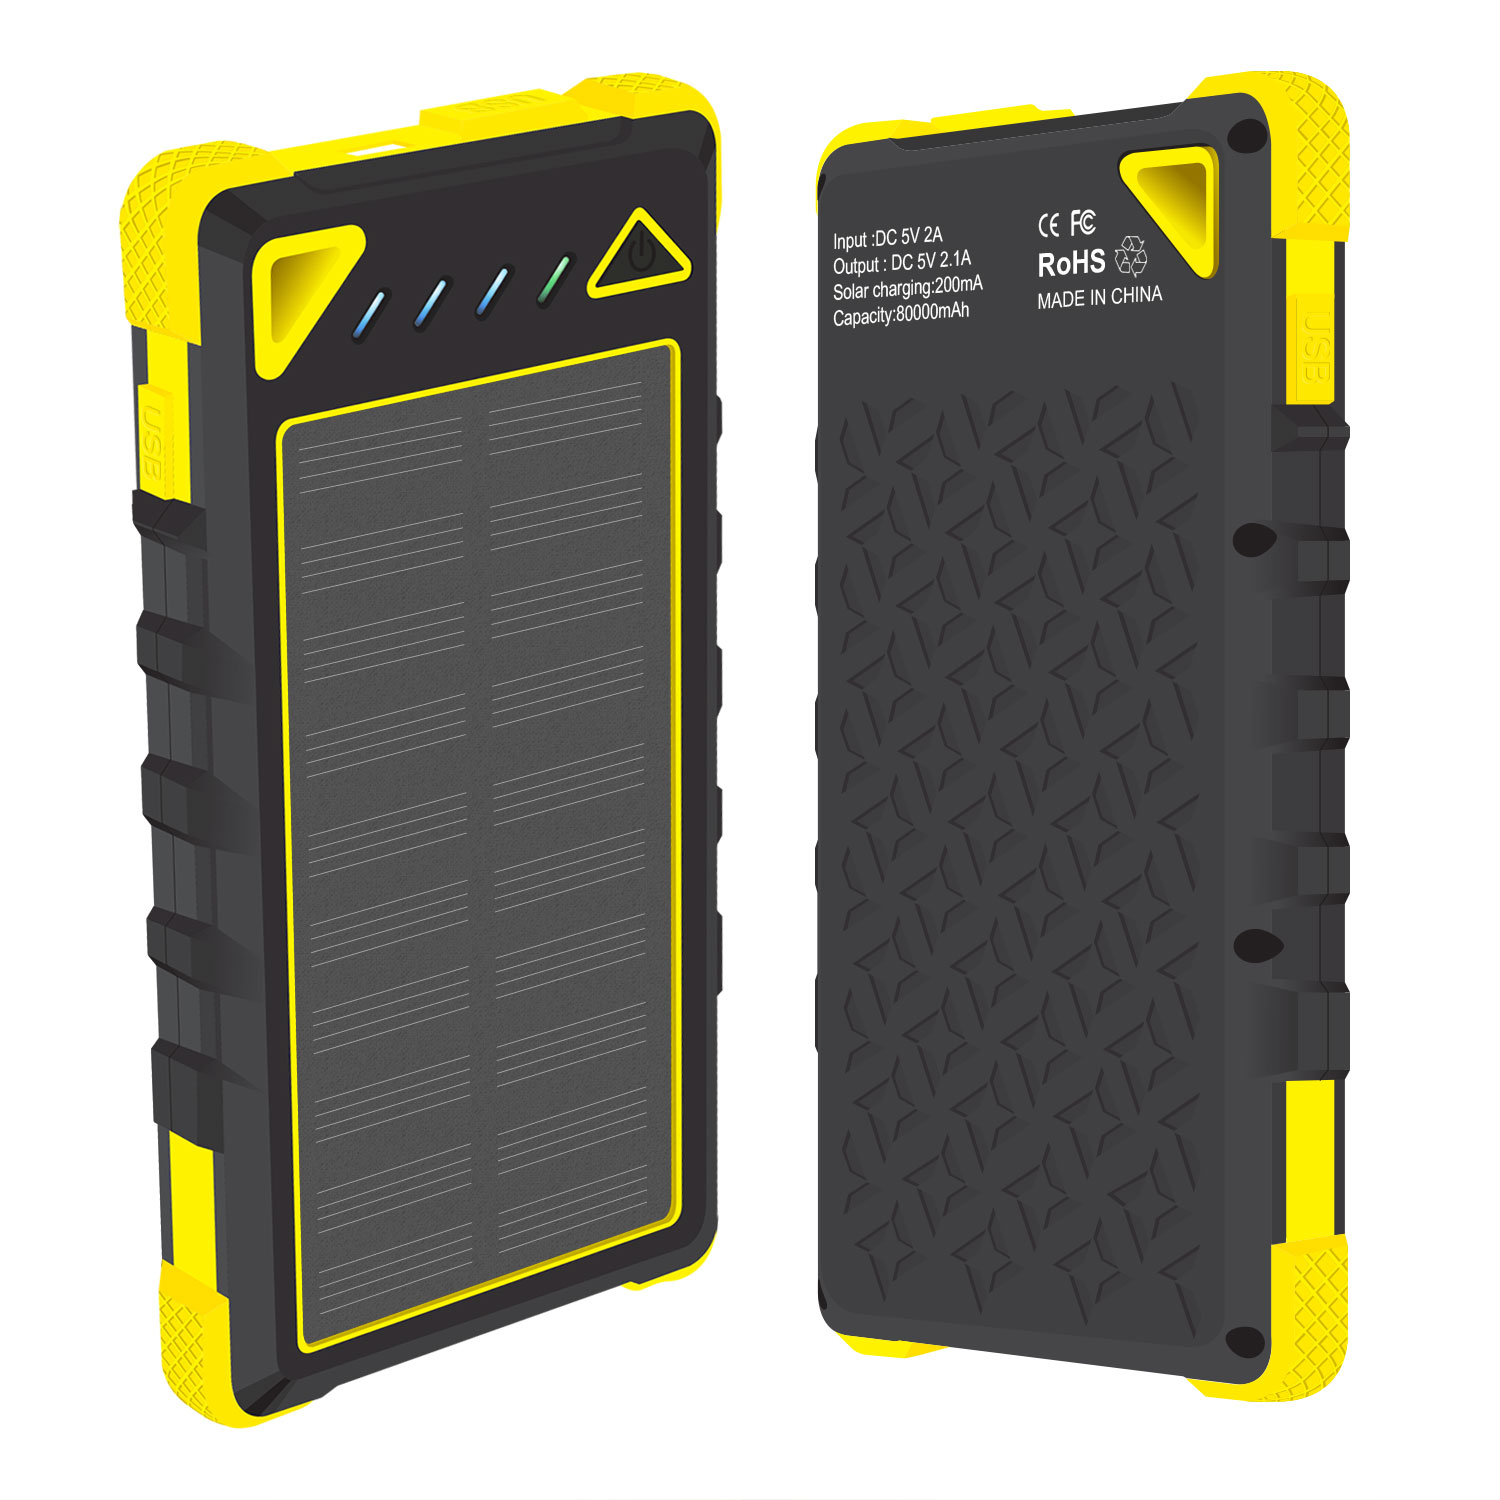 Nokia X2-01 Solar Powered Portable PowerBank Black